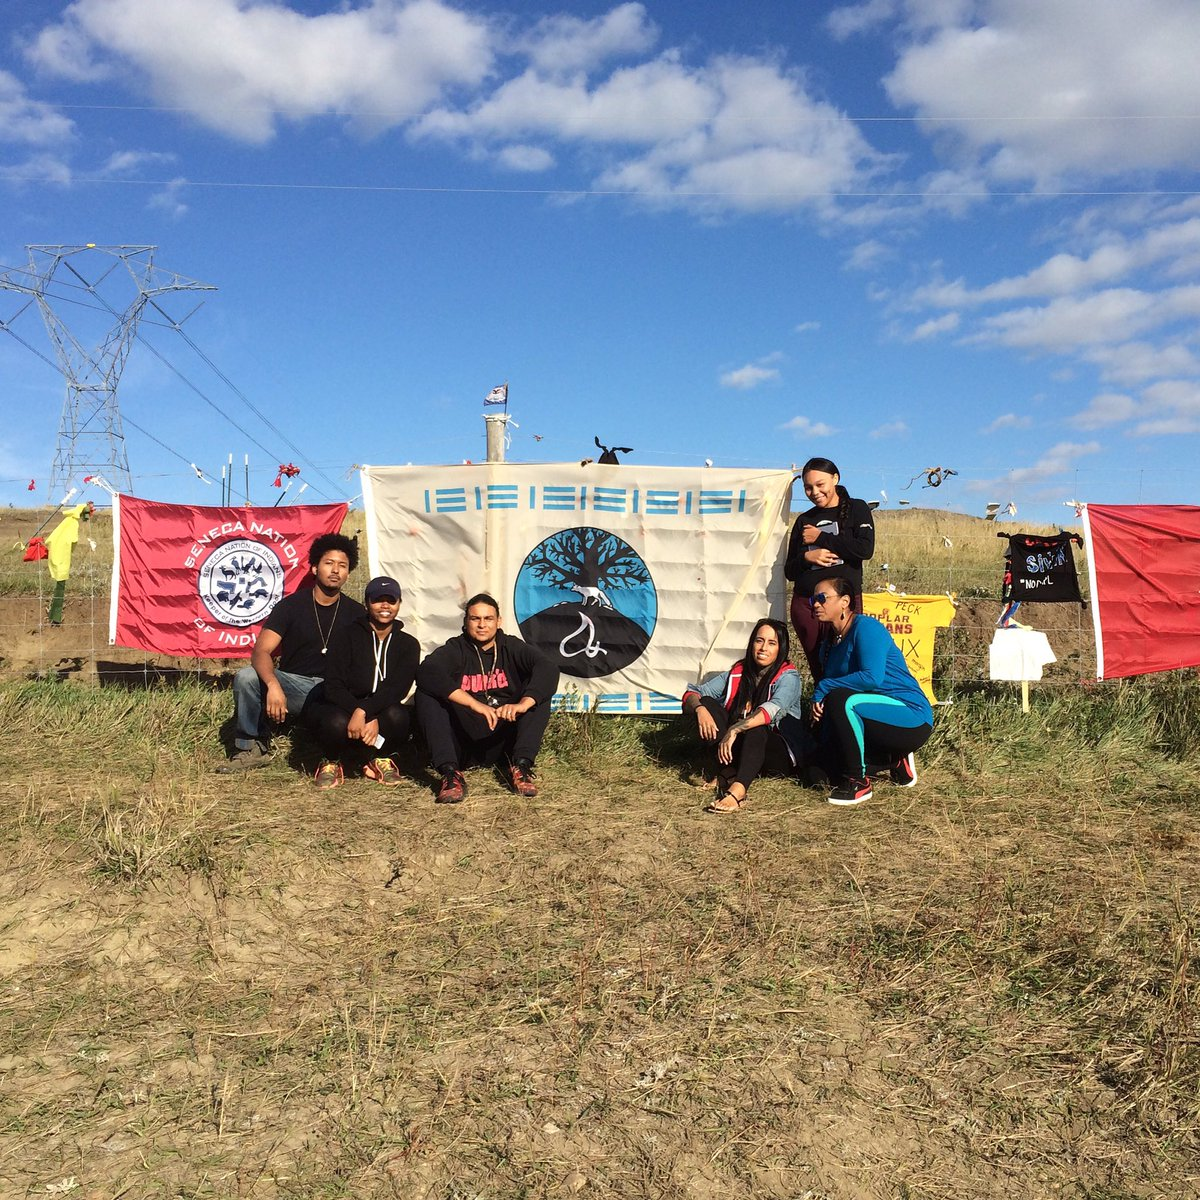 Mashantucket Pequots and Pequot Museum employees first arrive at Standing Rock! https://t.co/qq3QFbRVT0